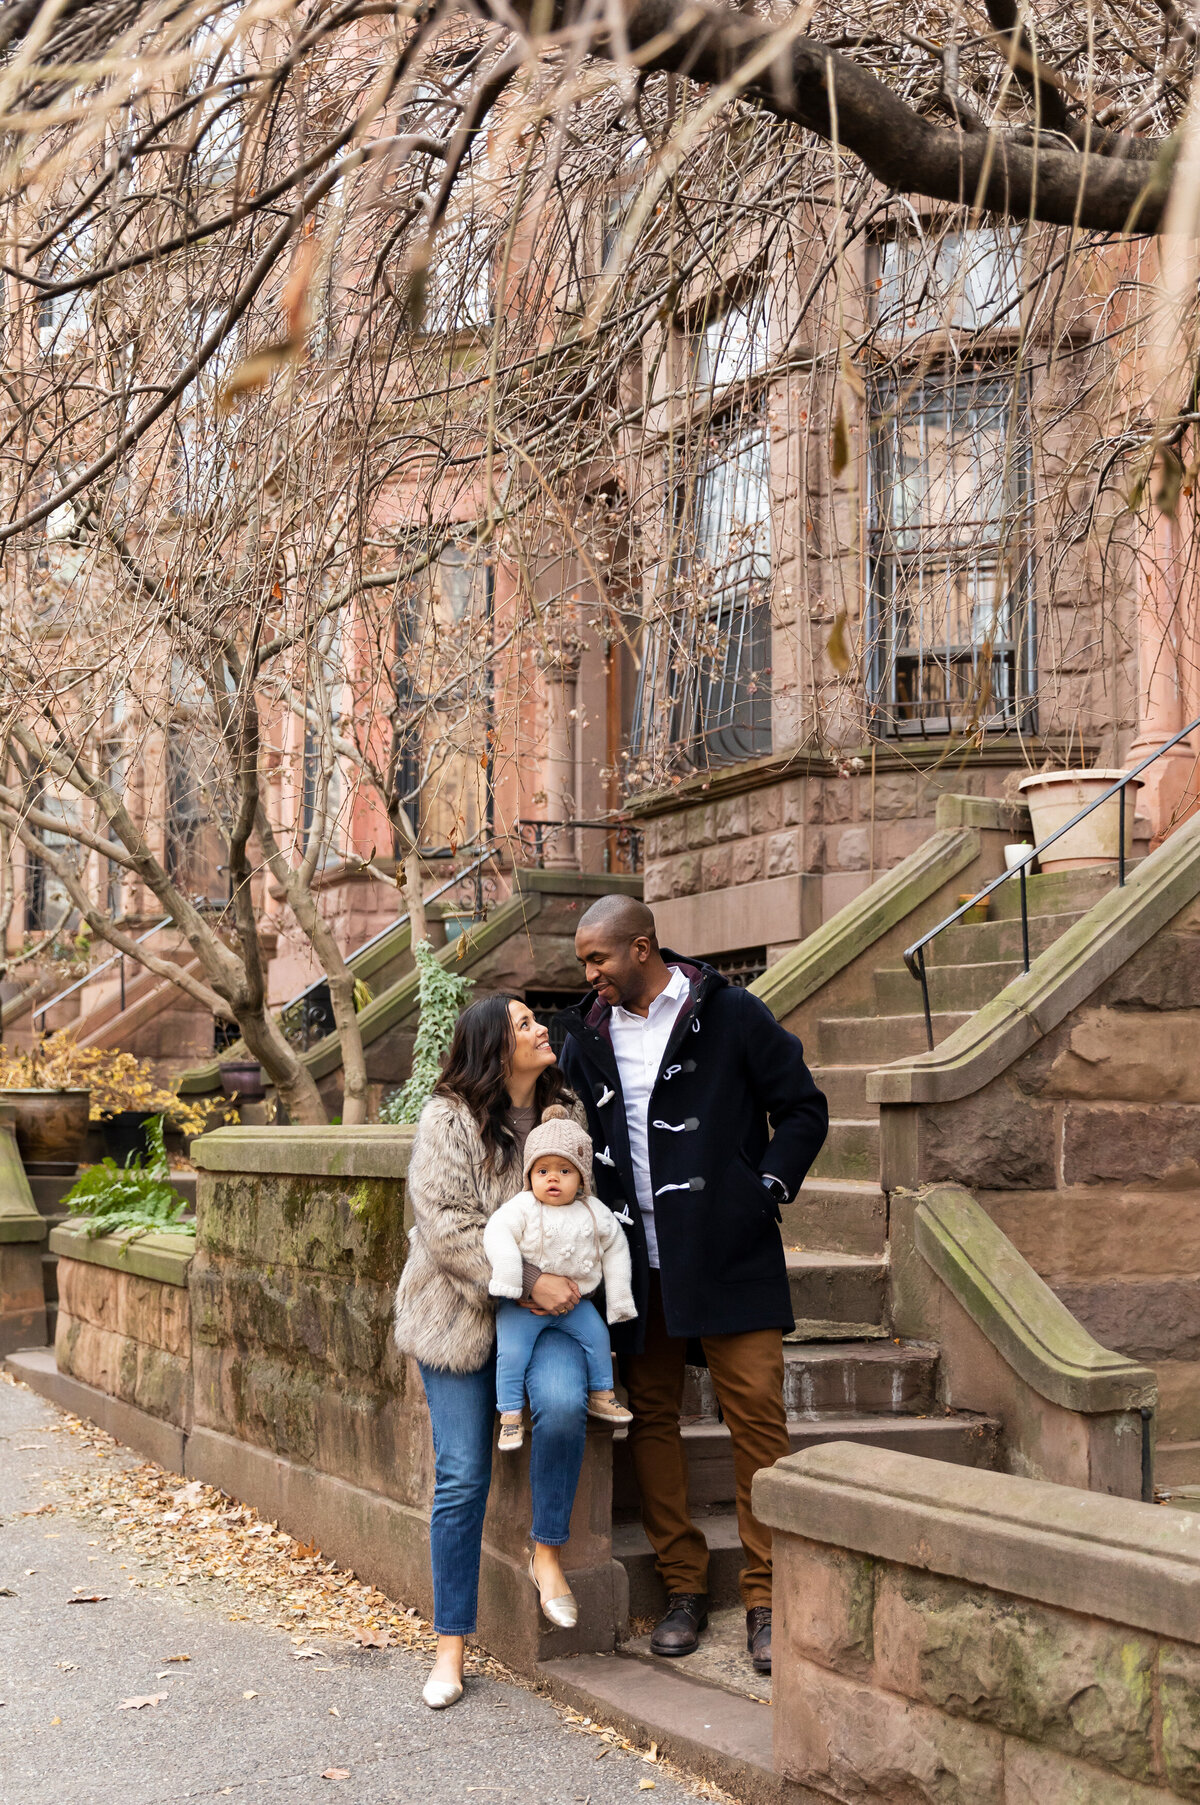 090_LAfamily_NYCfamily_20191208_Cartwright_Family_0967